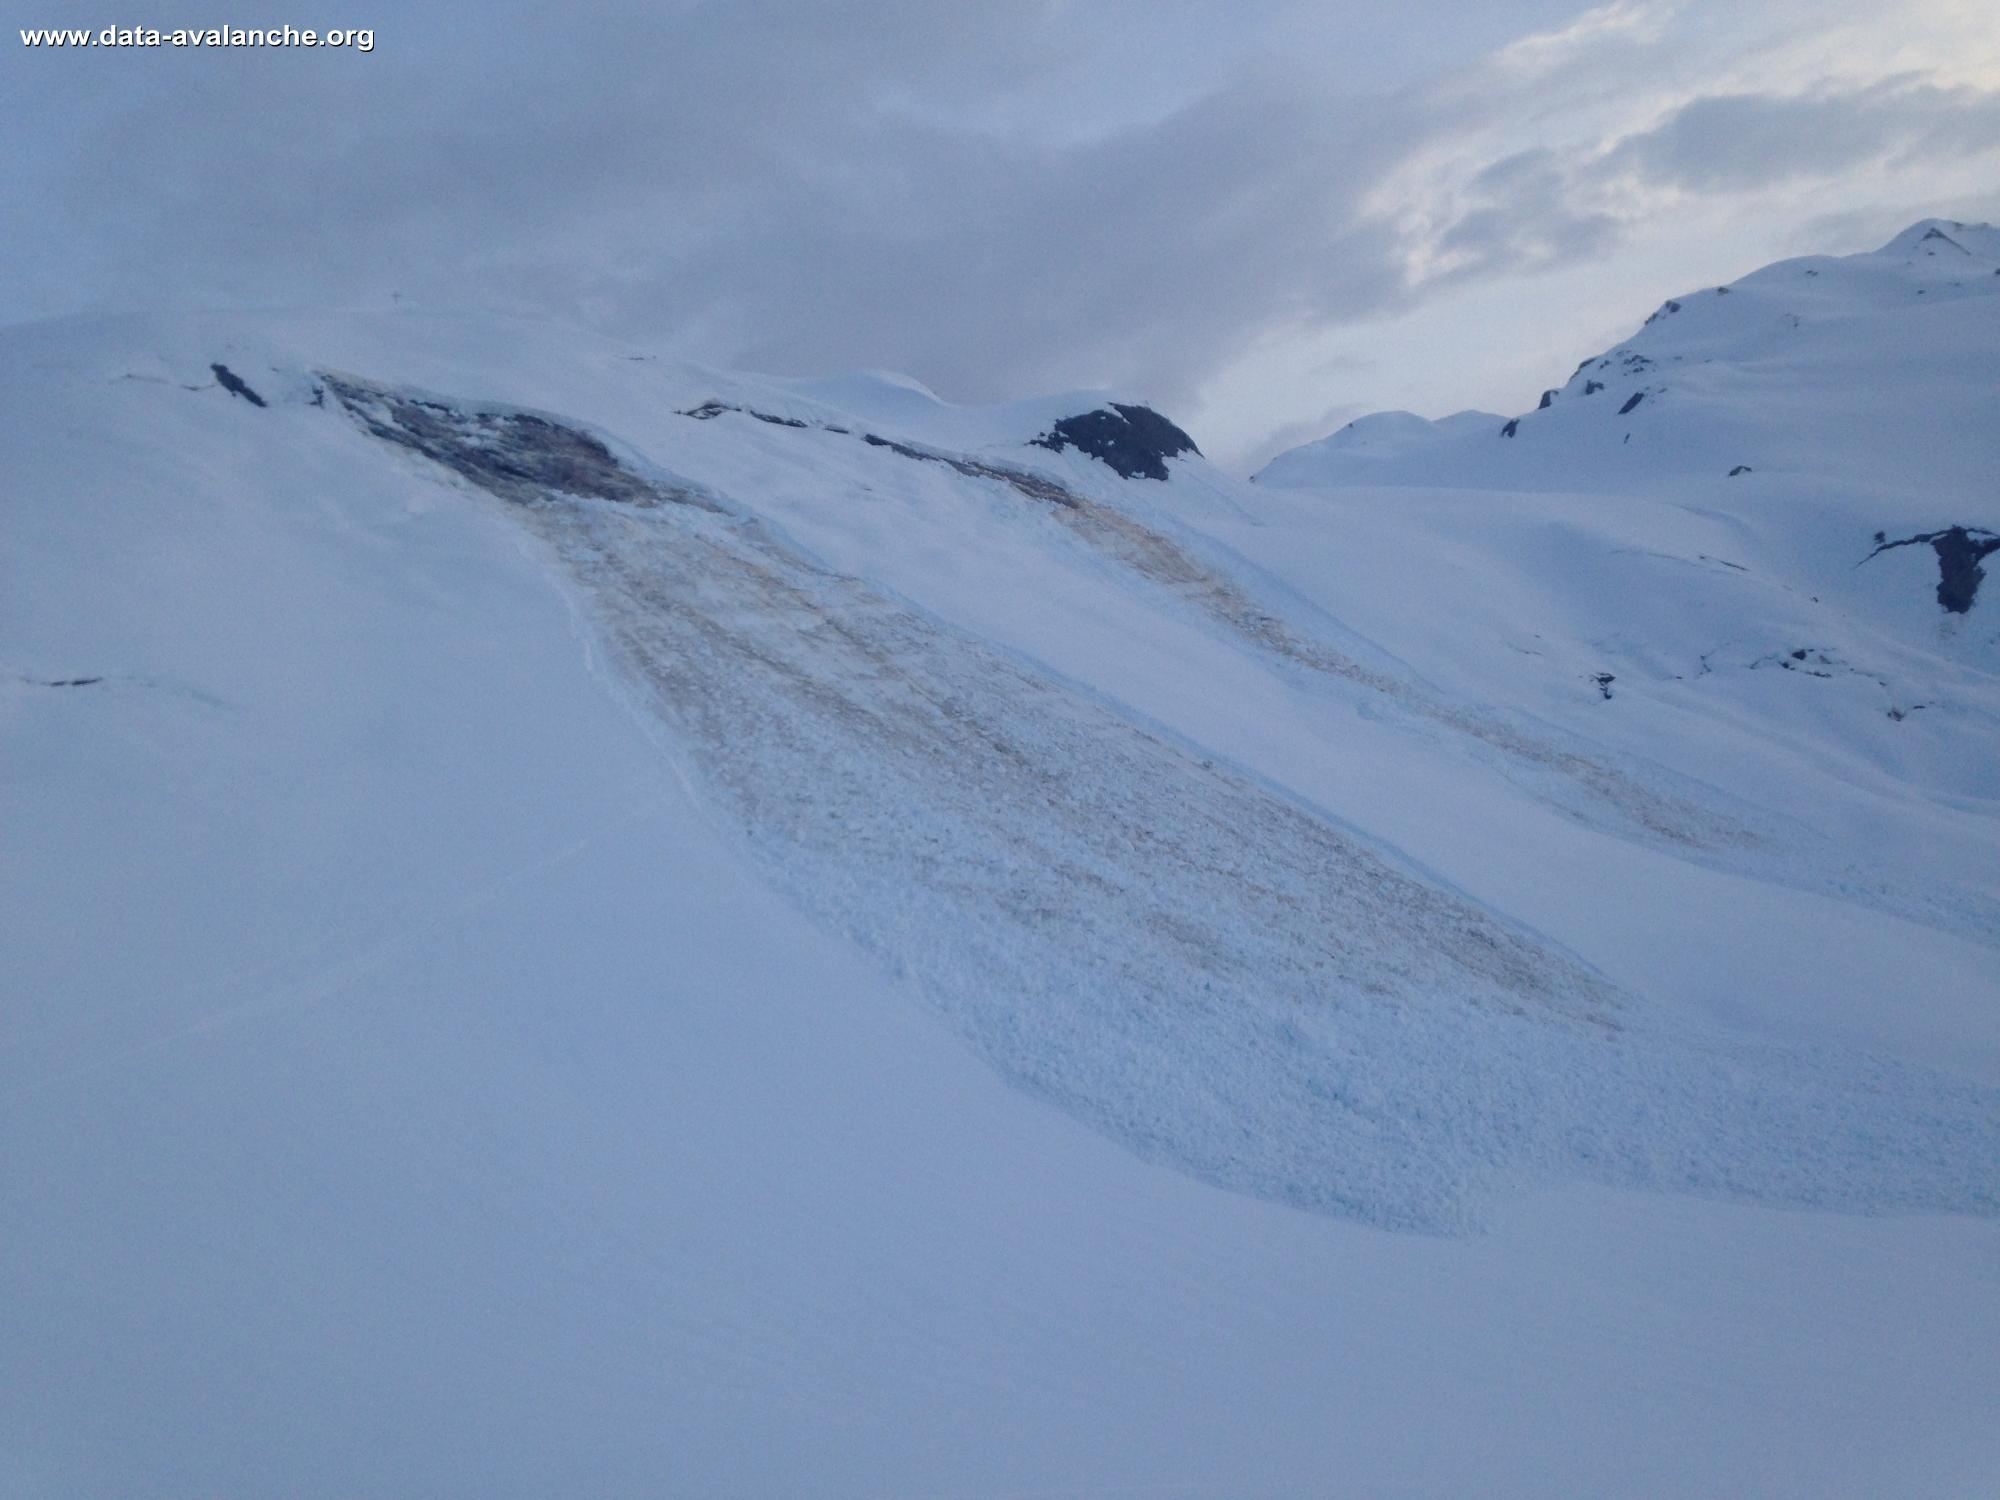 Avalanche Beaufortain, Col du Coin - Photo 1